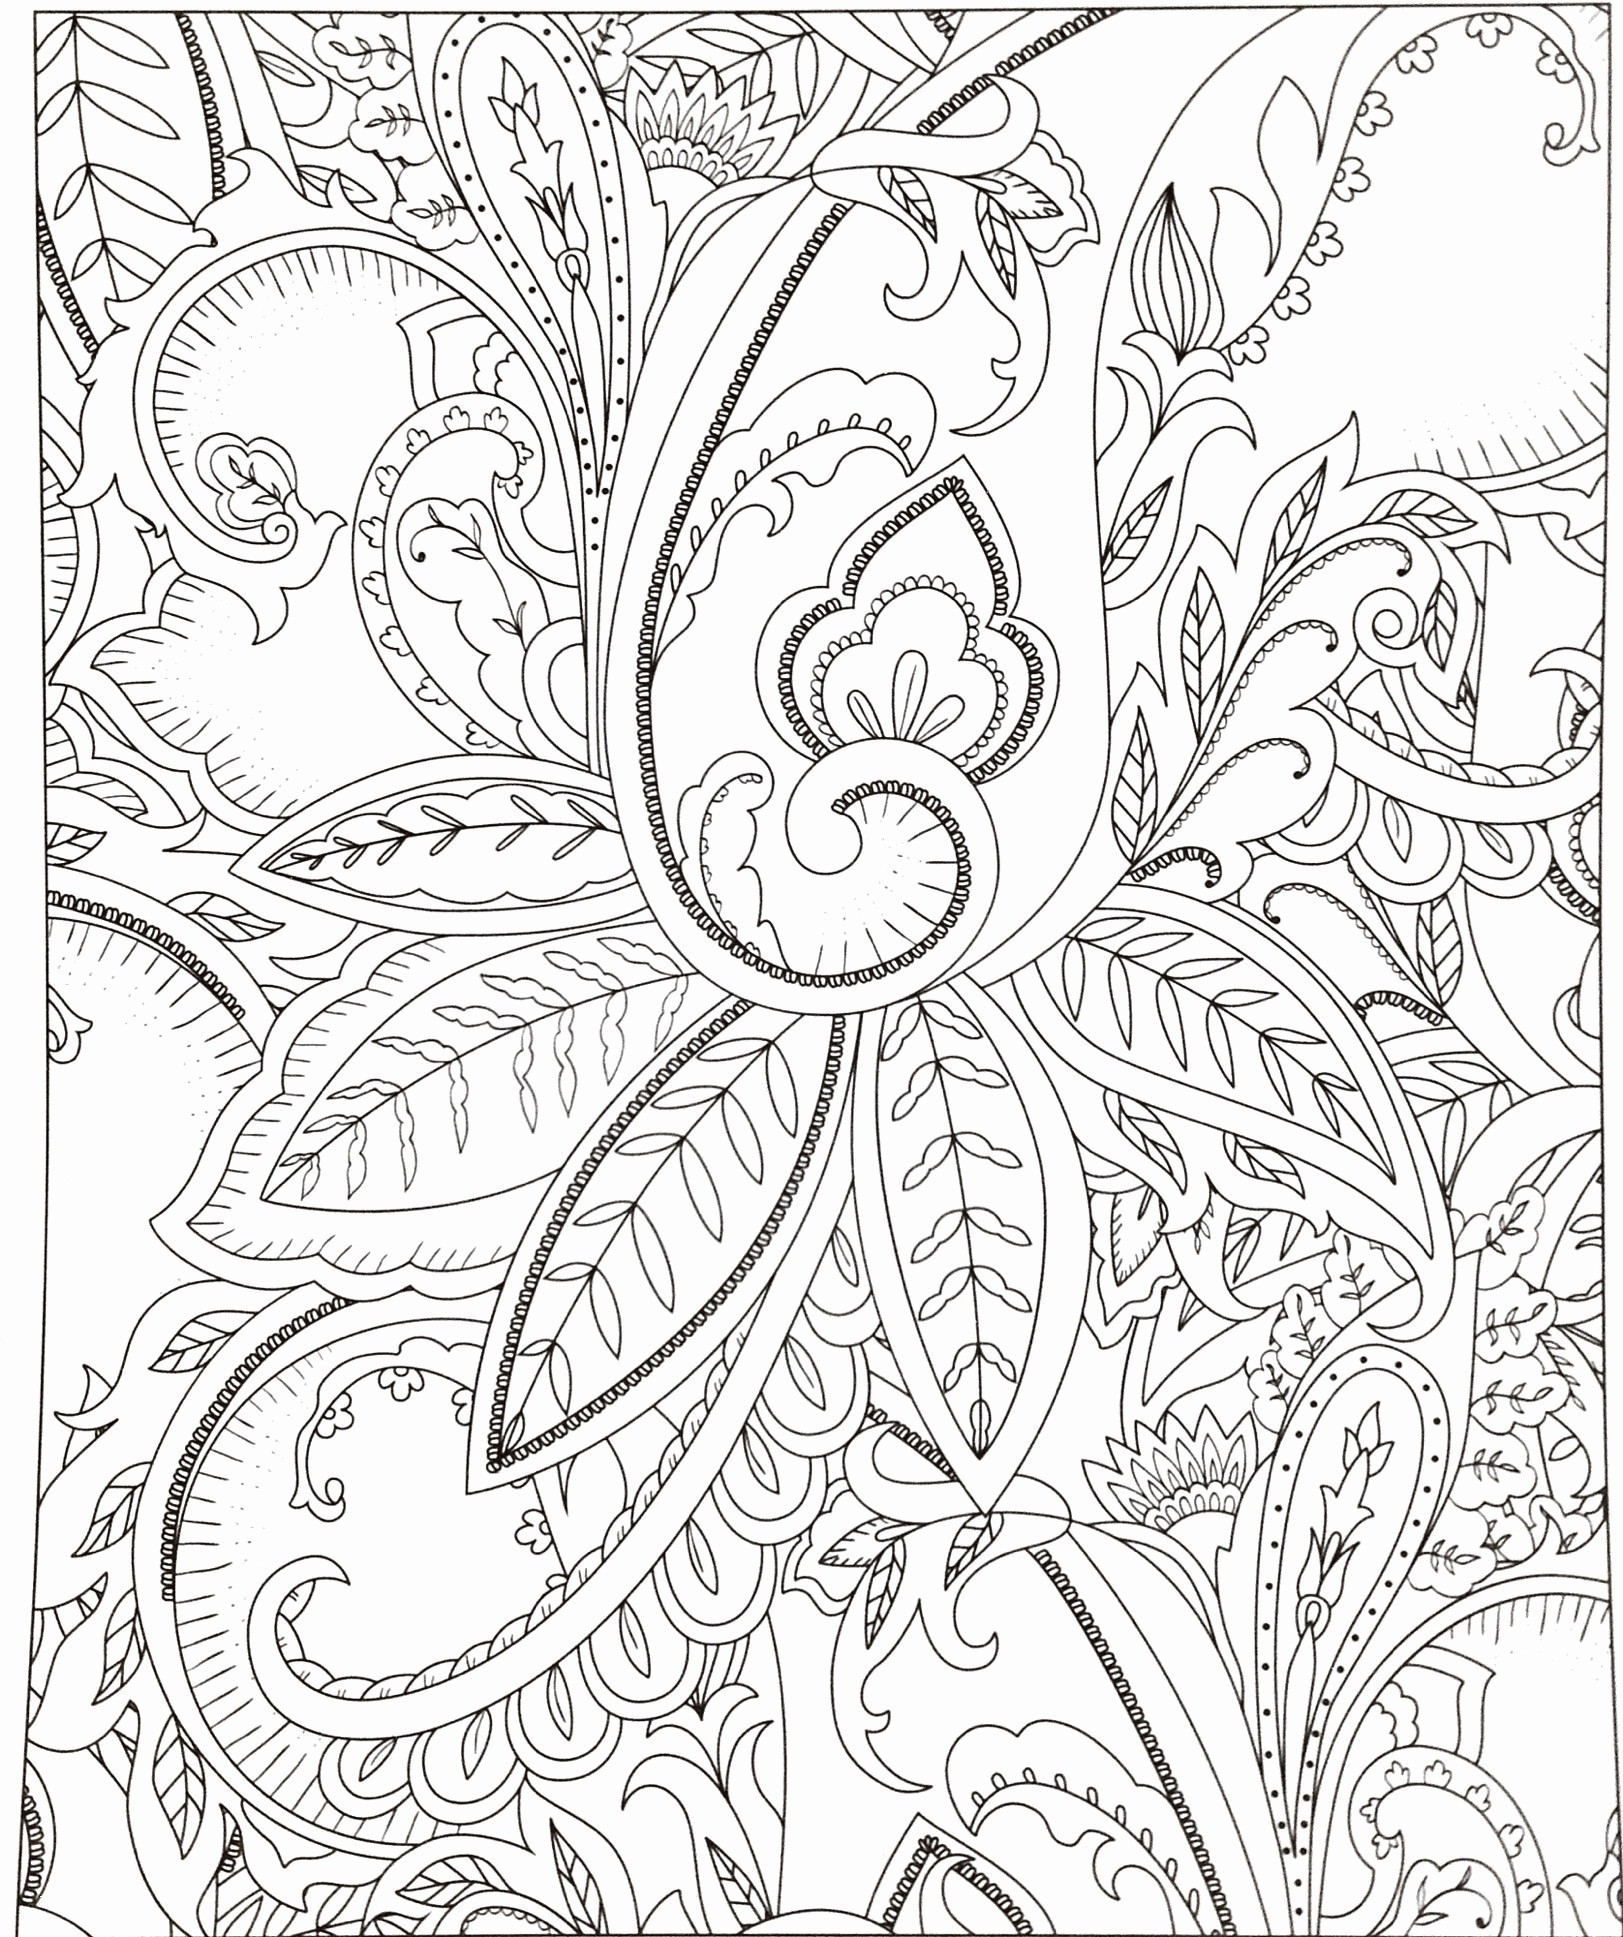 Mia and Me Coloring Pages Neu Mia and Me Coloring Pages Awesome Elegant Ausmalbilder Mia and Me Bild